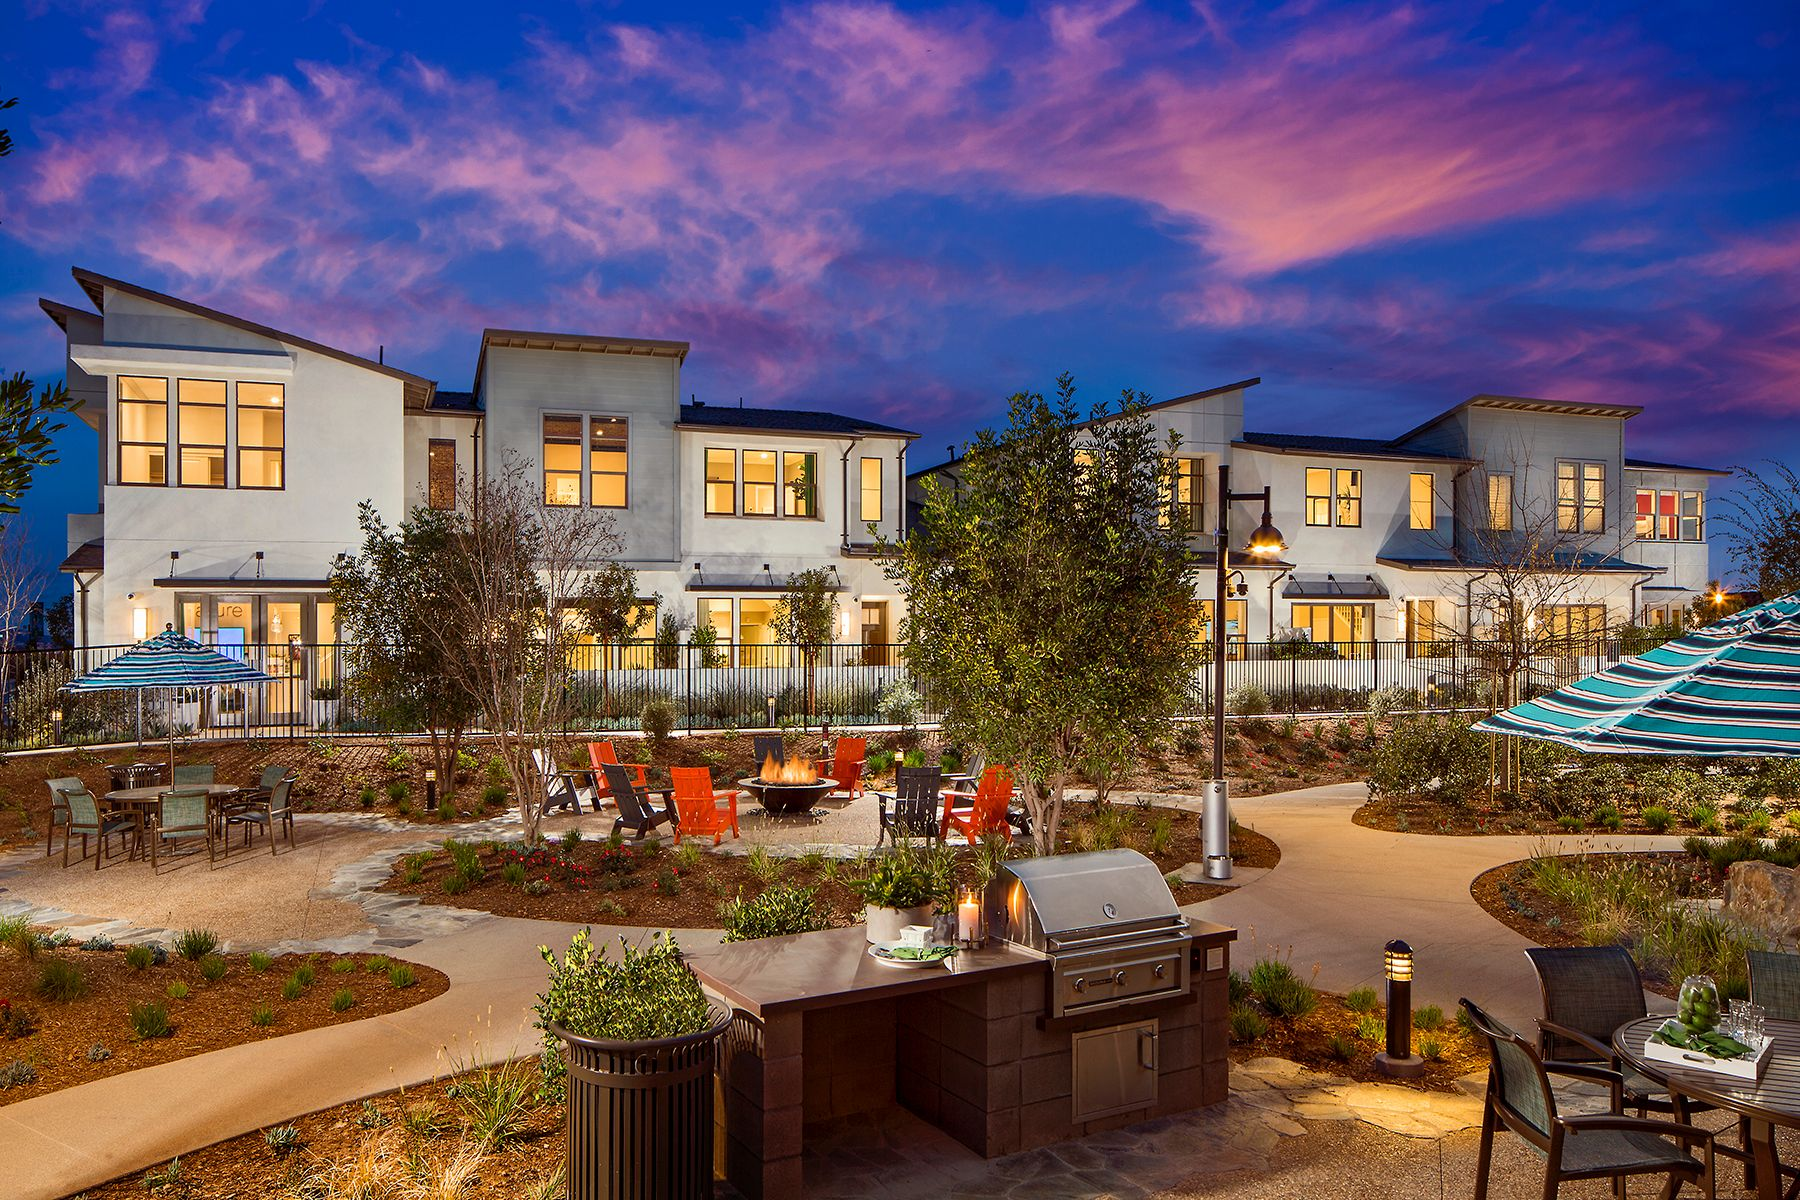 13 The New Home Company Communities in Orange County, CA | NewHomeSource